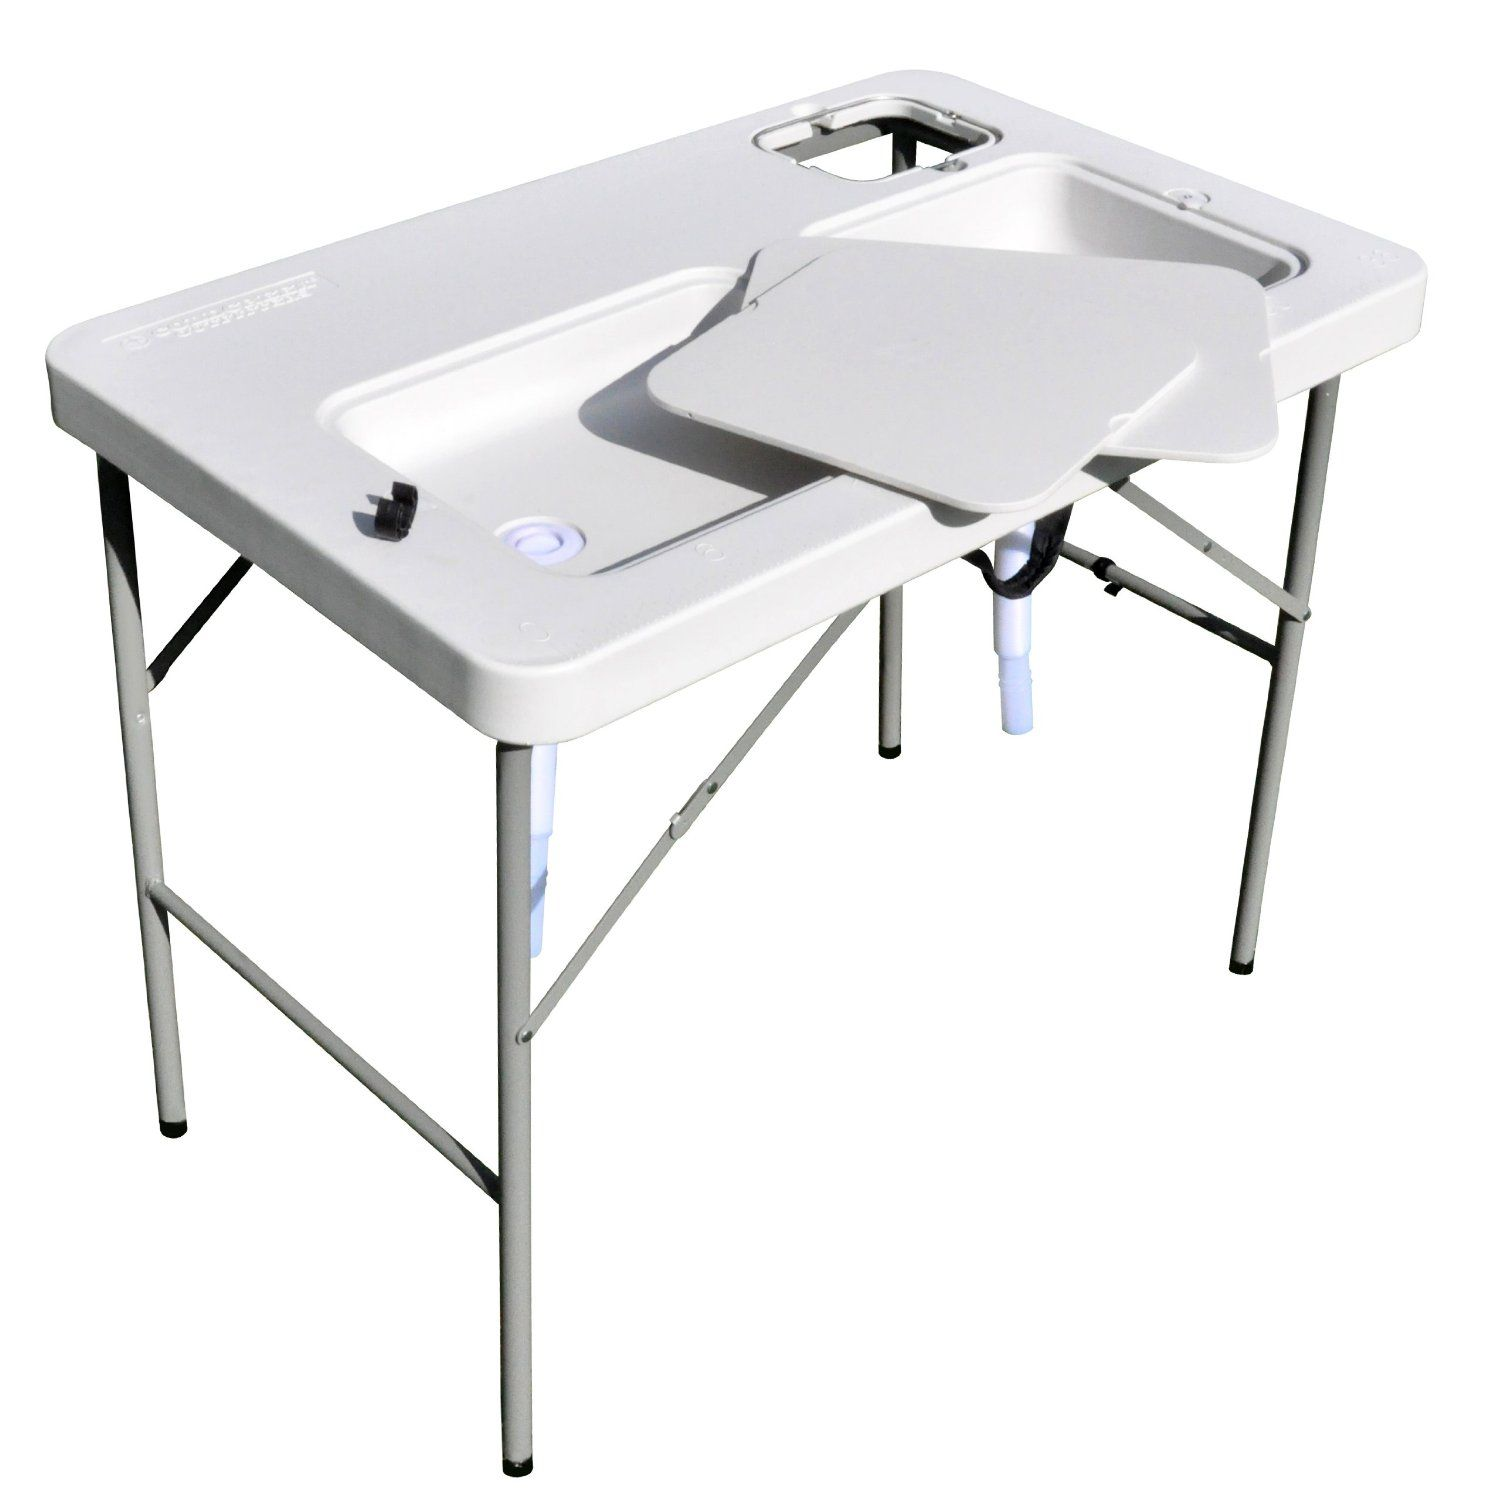 Coleman fish cleaning table re camping sink - 3 Best Portable Fish Cleaning Tables